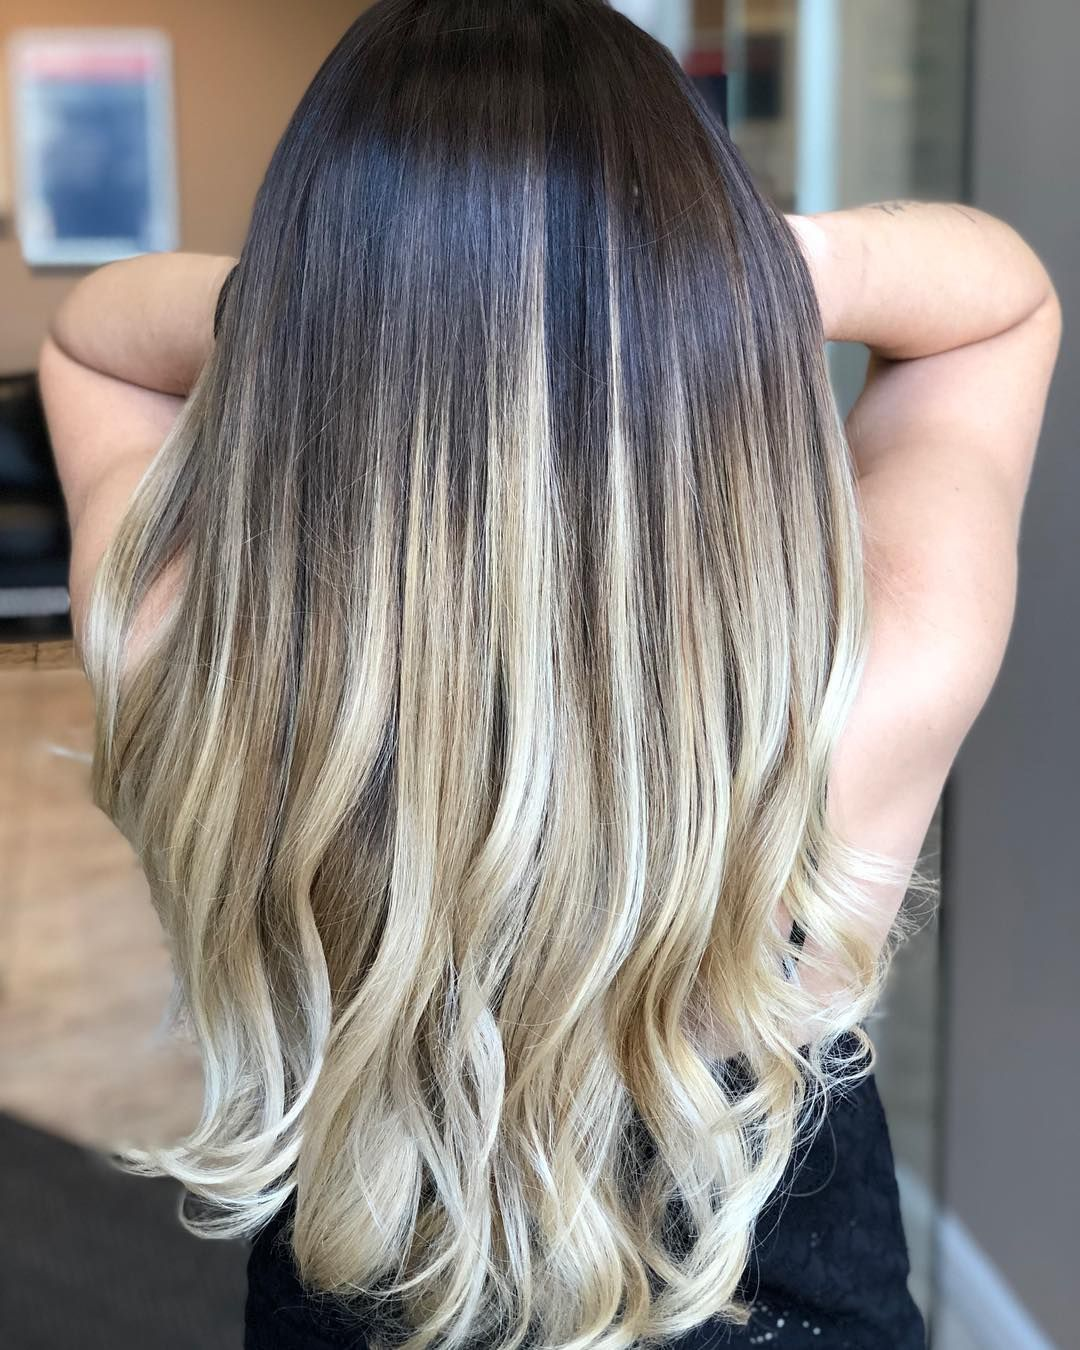 Victoria Caputo On Instagram Nothing Better Than A Dark Root And Light Ends Balayage B Dark Brunette Balayage Hair Balayage Hair Balayage Hair Dark